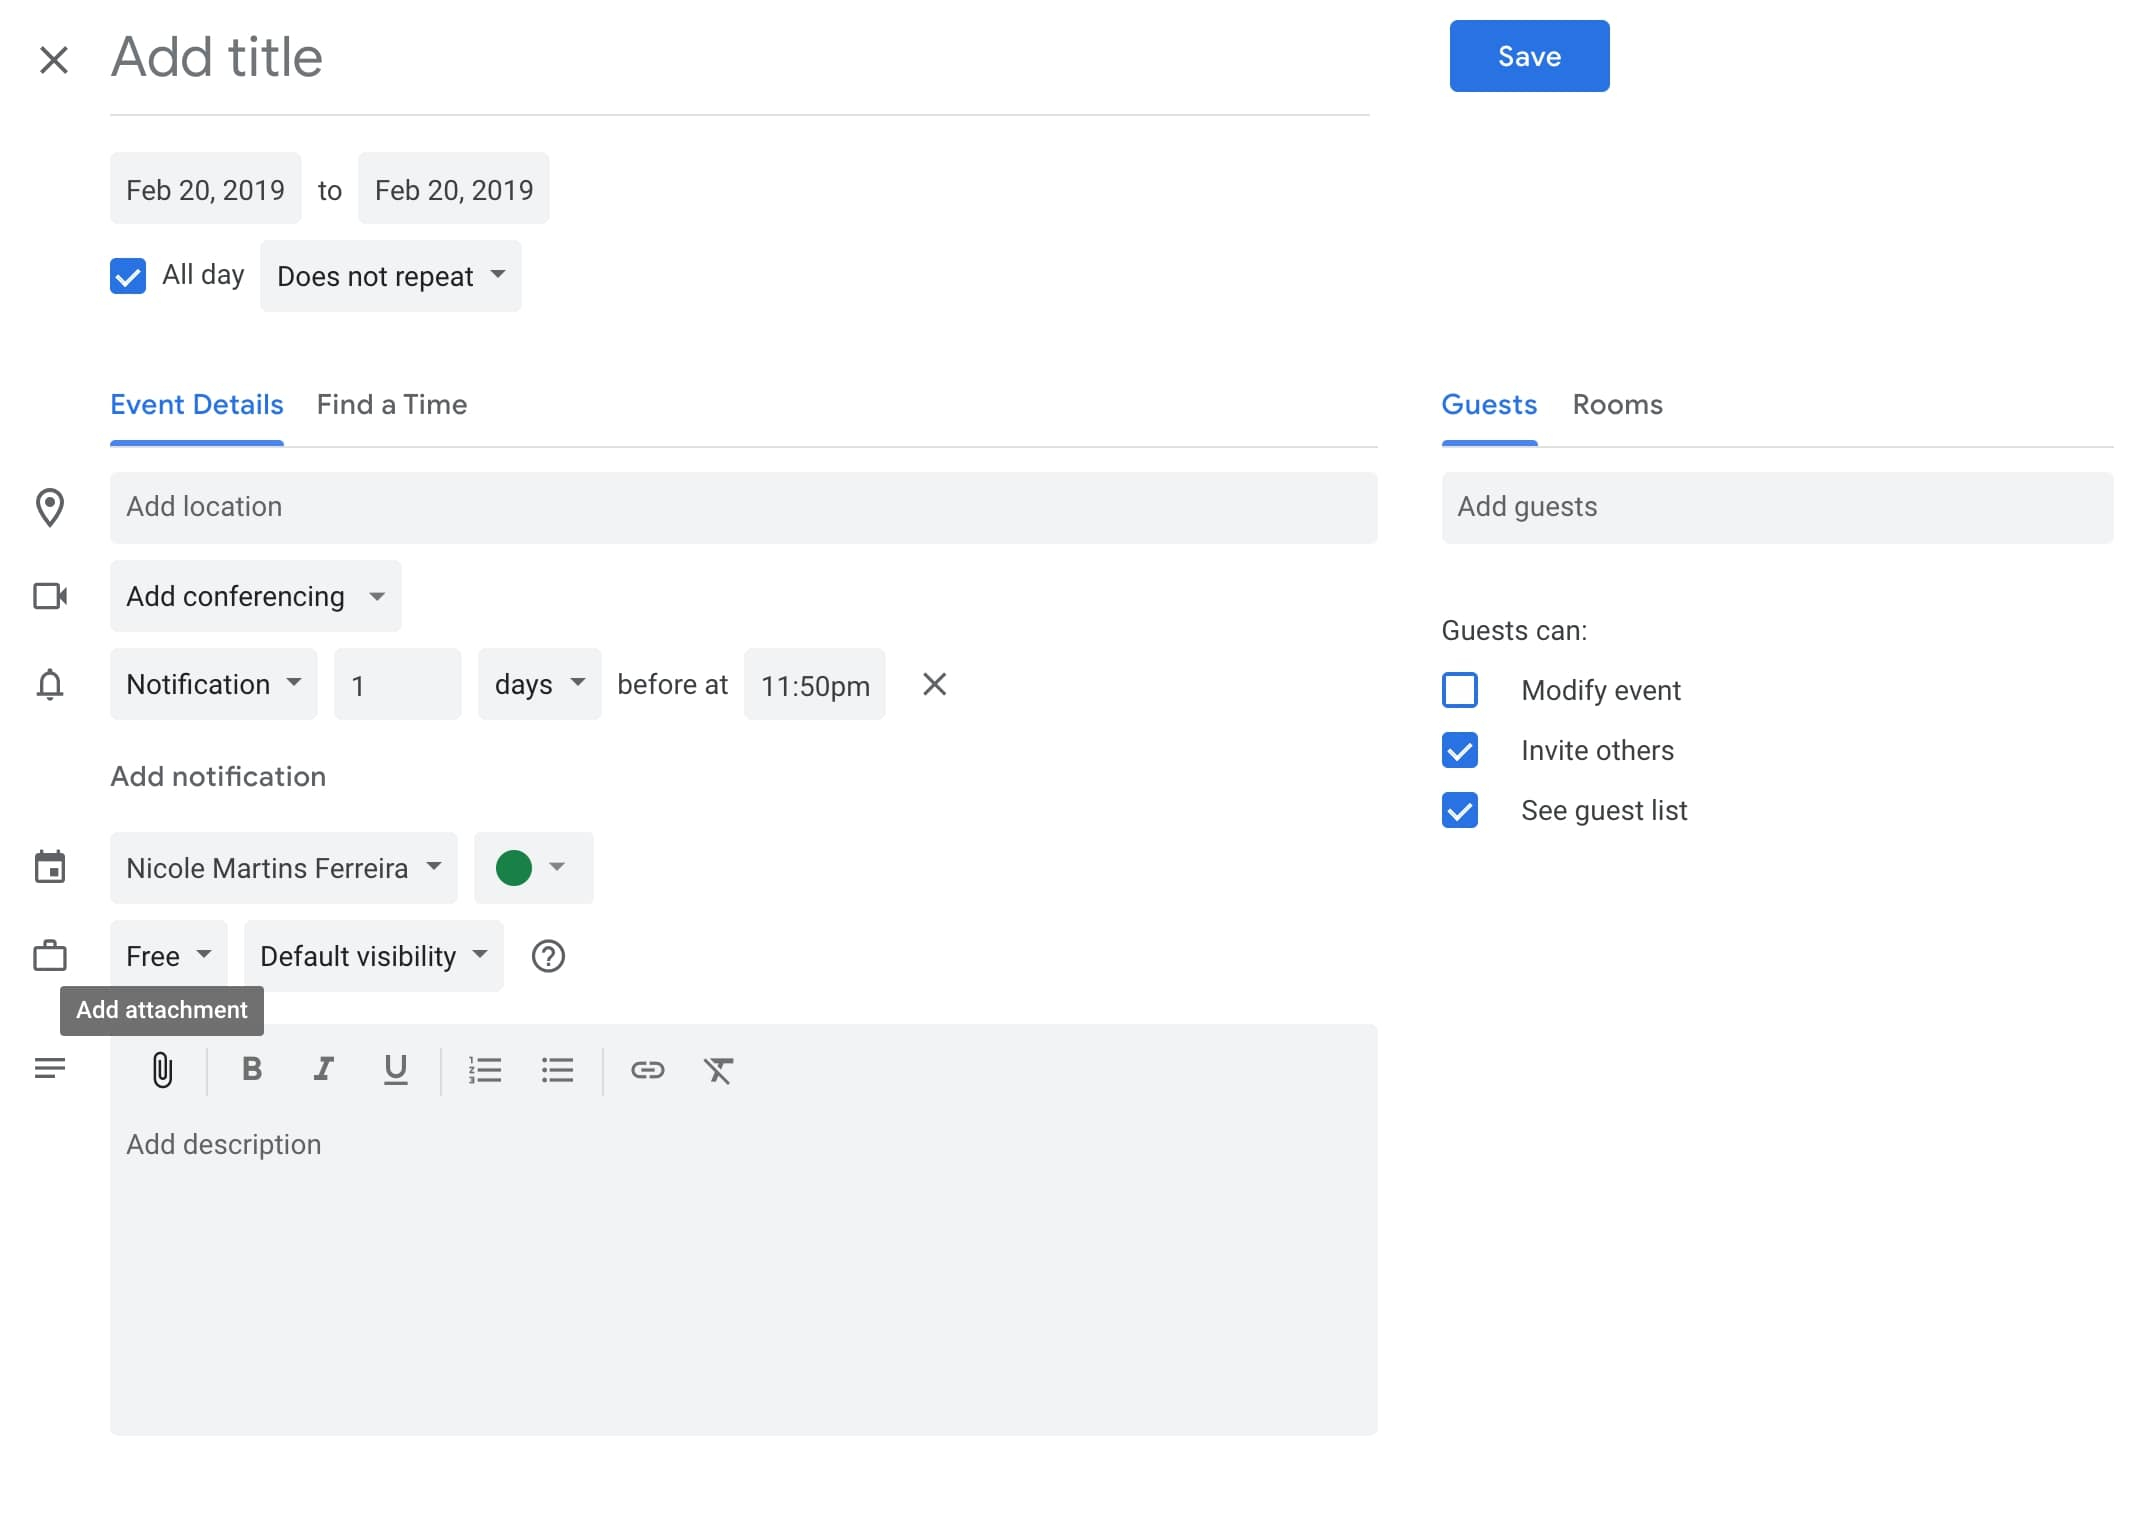 20 Ways To Use Google Calendar To Maximize Your Day In 2020 in Google Calendar Add Image